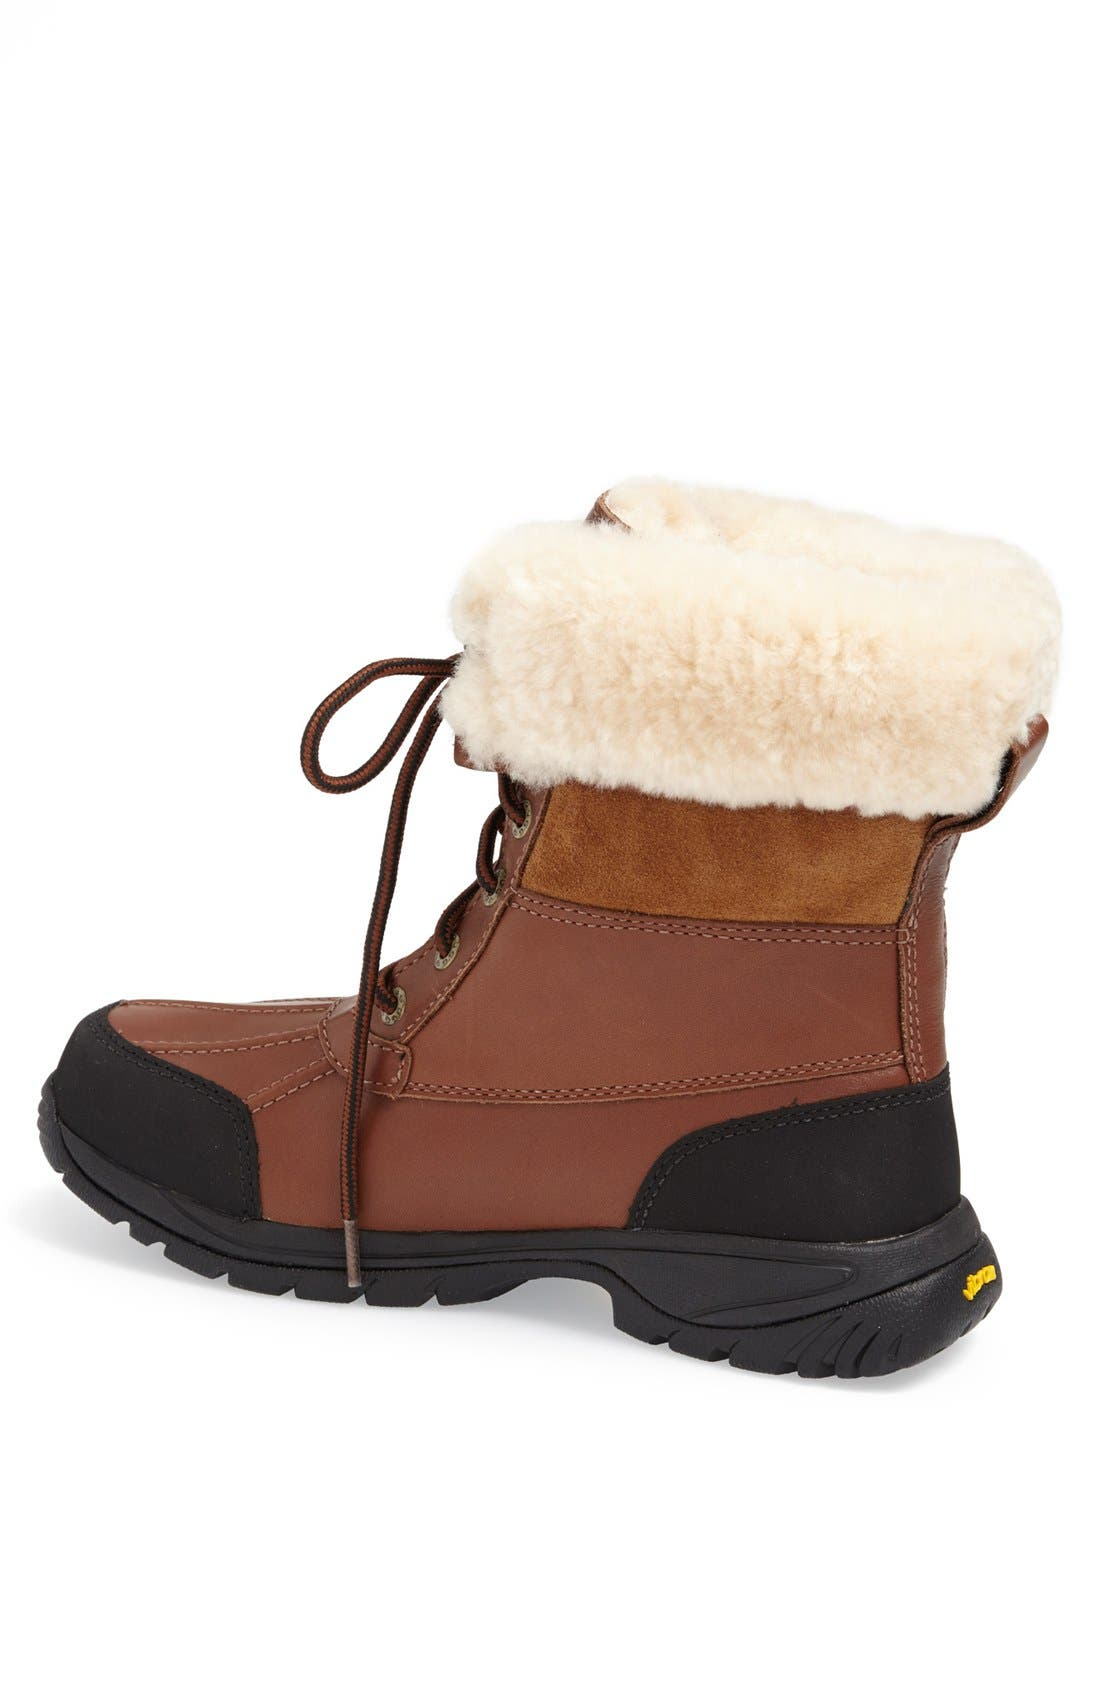 UGG<SUP>®</SUP>, Butte Waterproof Boot, Alternate thumbnail 2, color, WORCHESTER